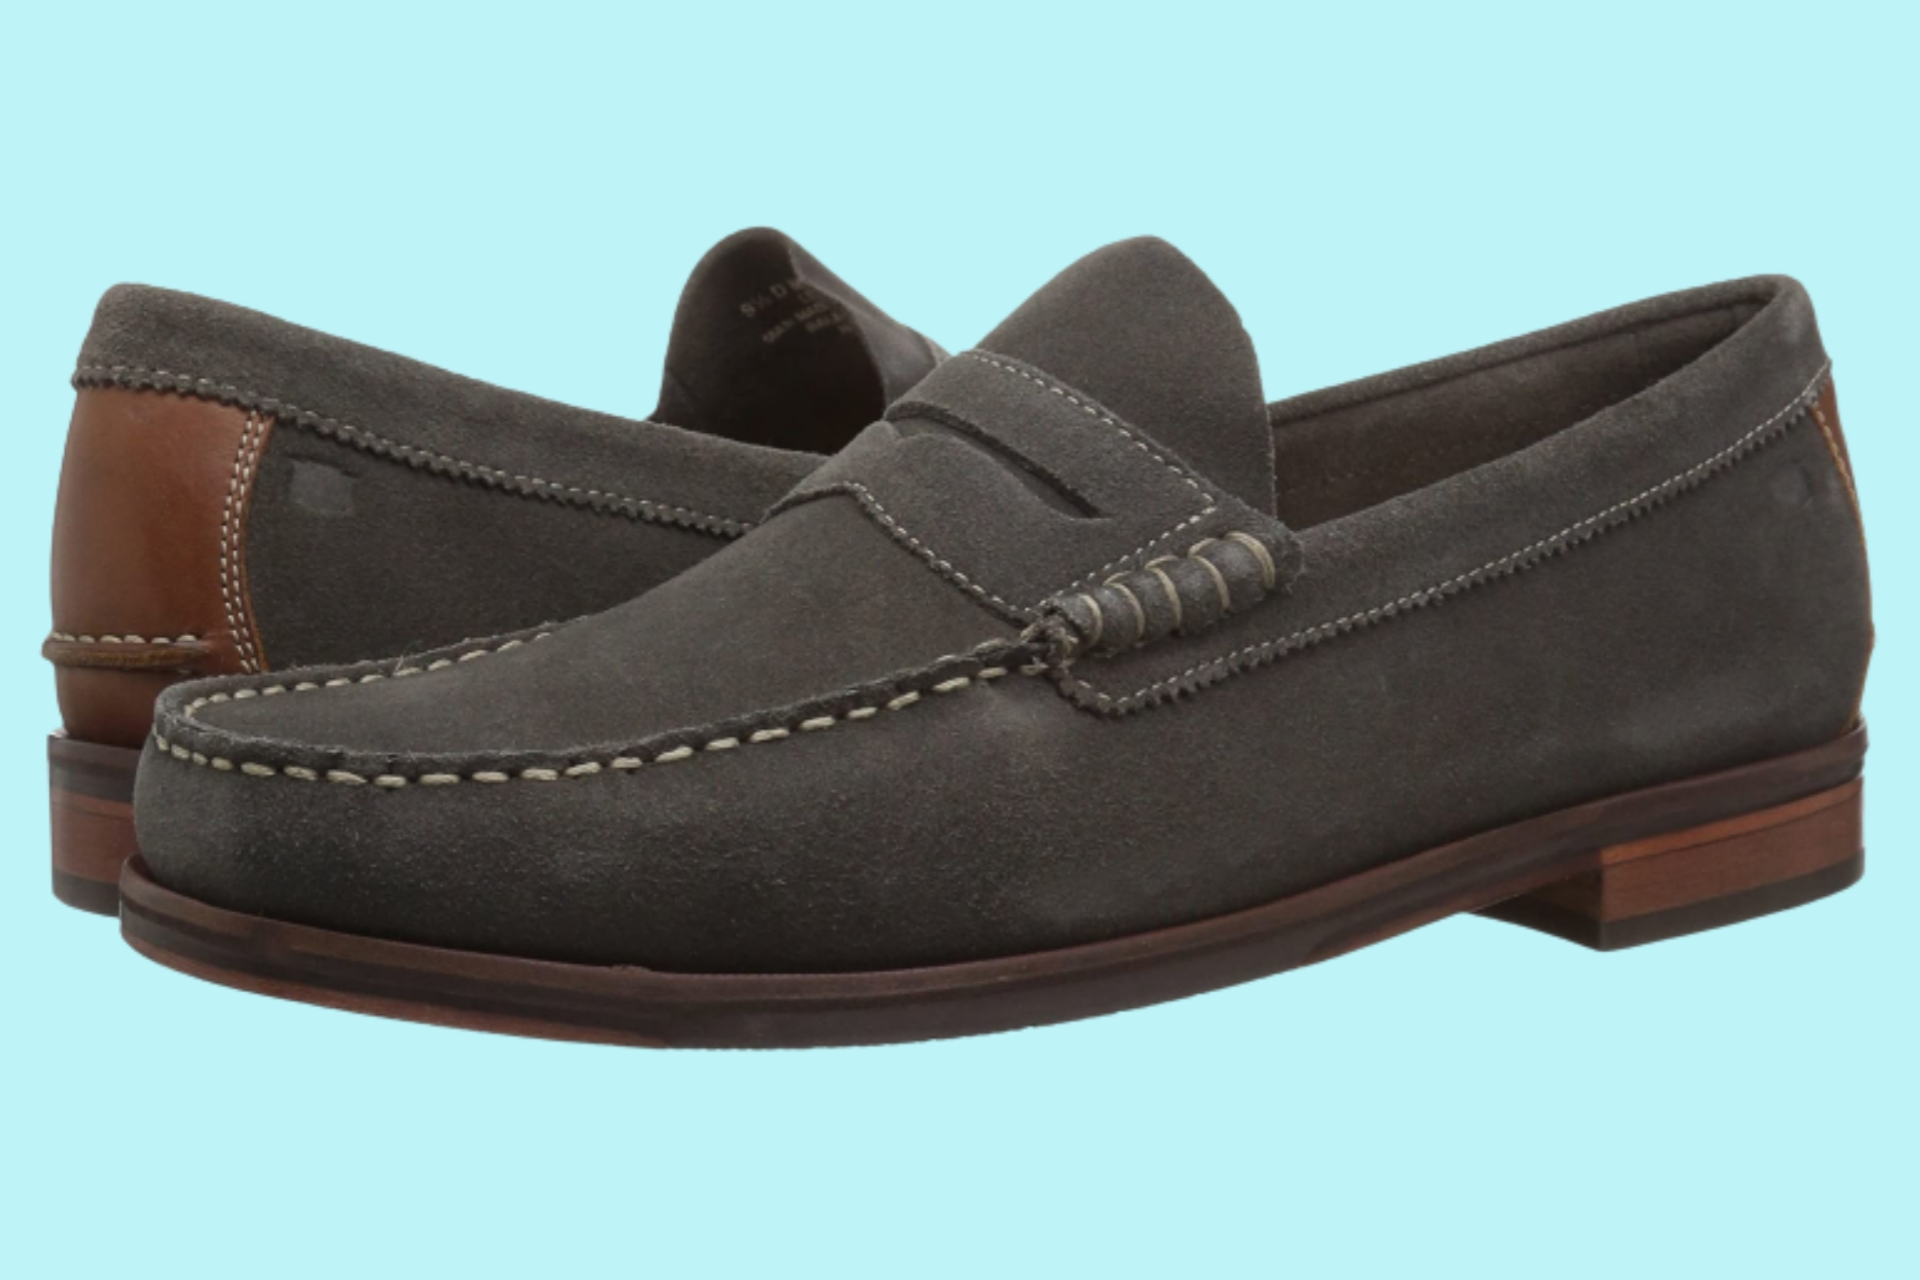 Men's Florsheim suede loafer